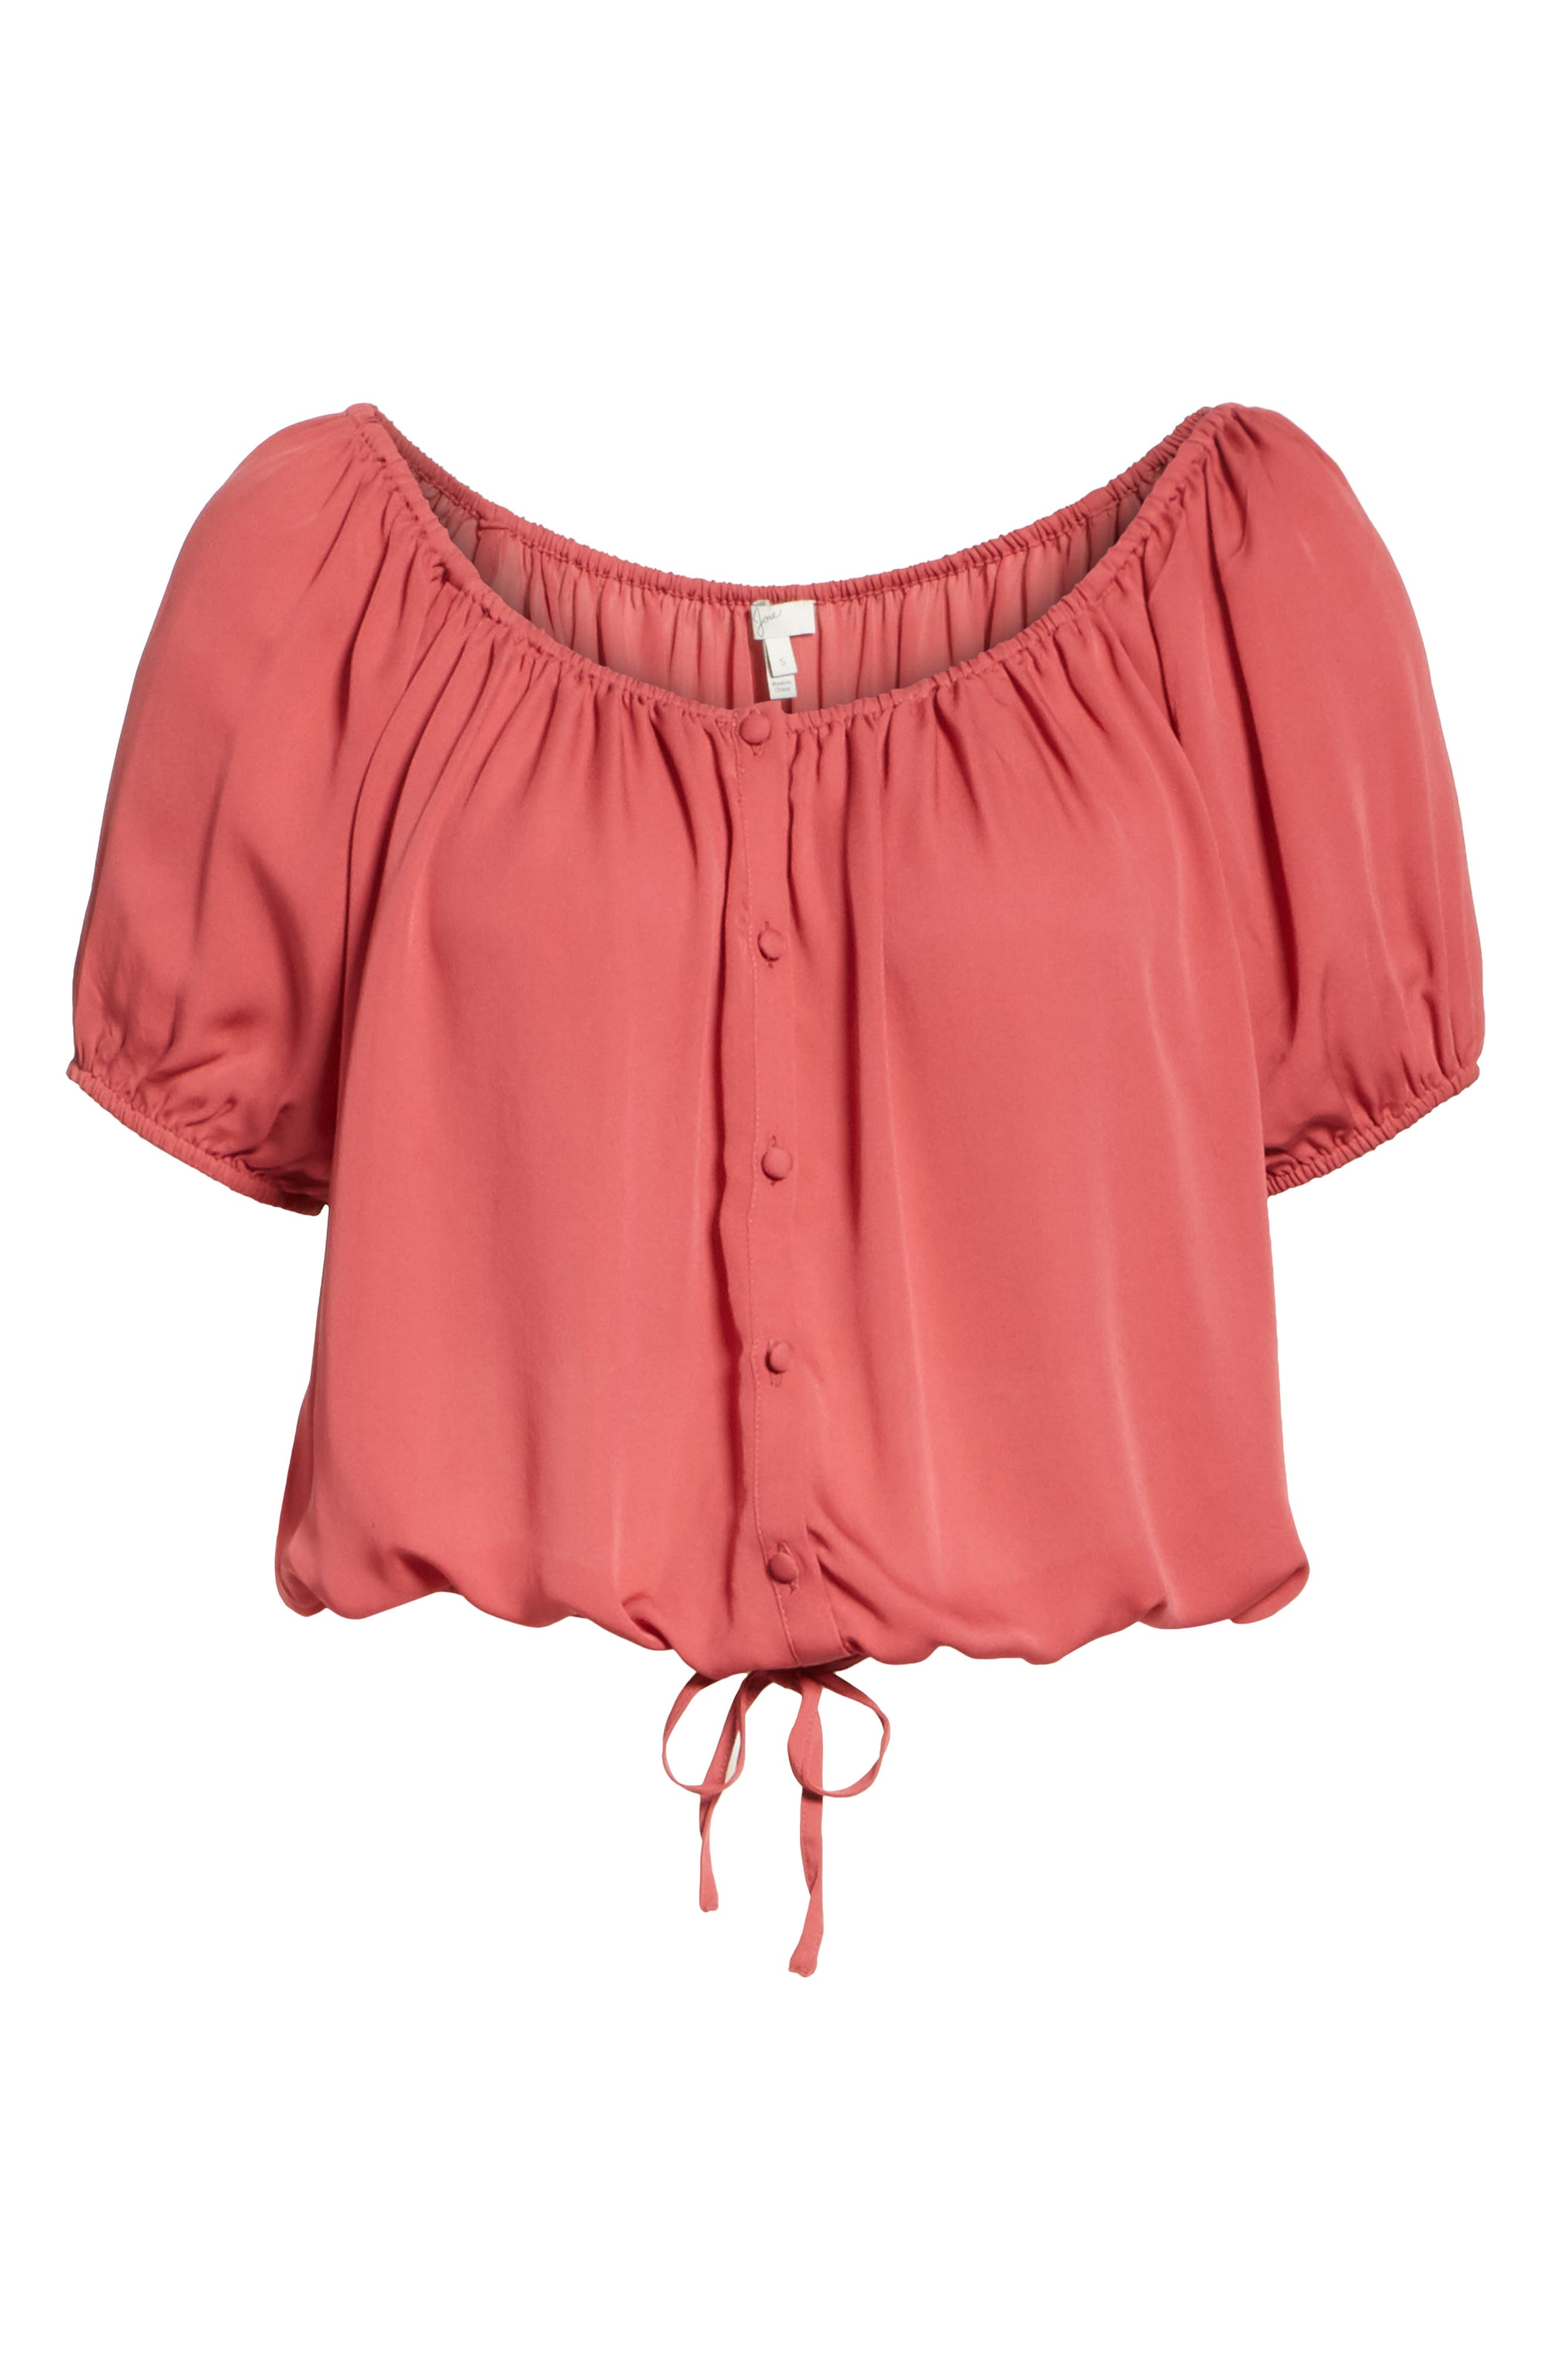 Blesina Tie Front Short Sleeve Silk Blouse,                             Alternate thumbnail 6, color,                             West Rose